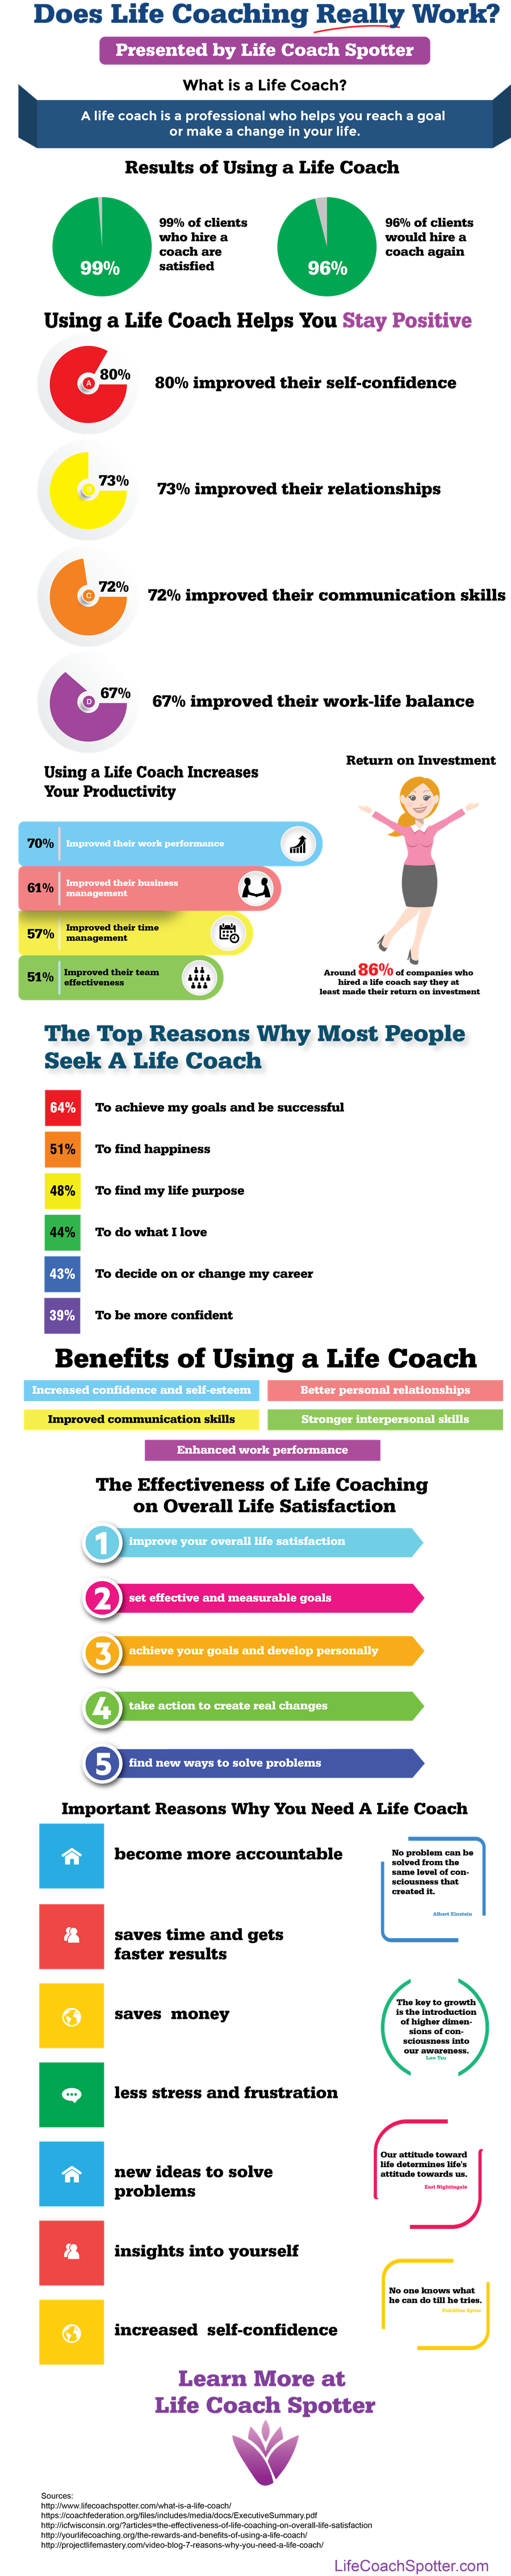 How Life Coach Can Help You Improve the Quality of Your Life